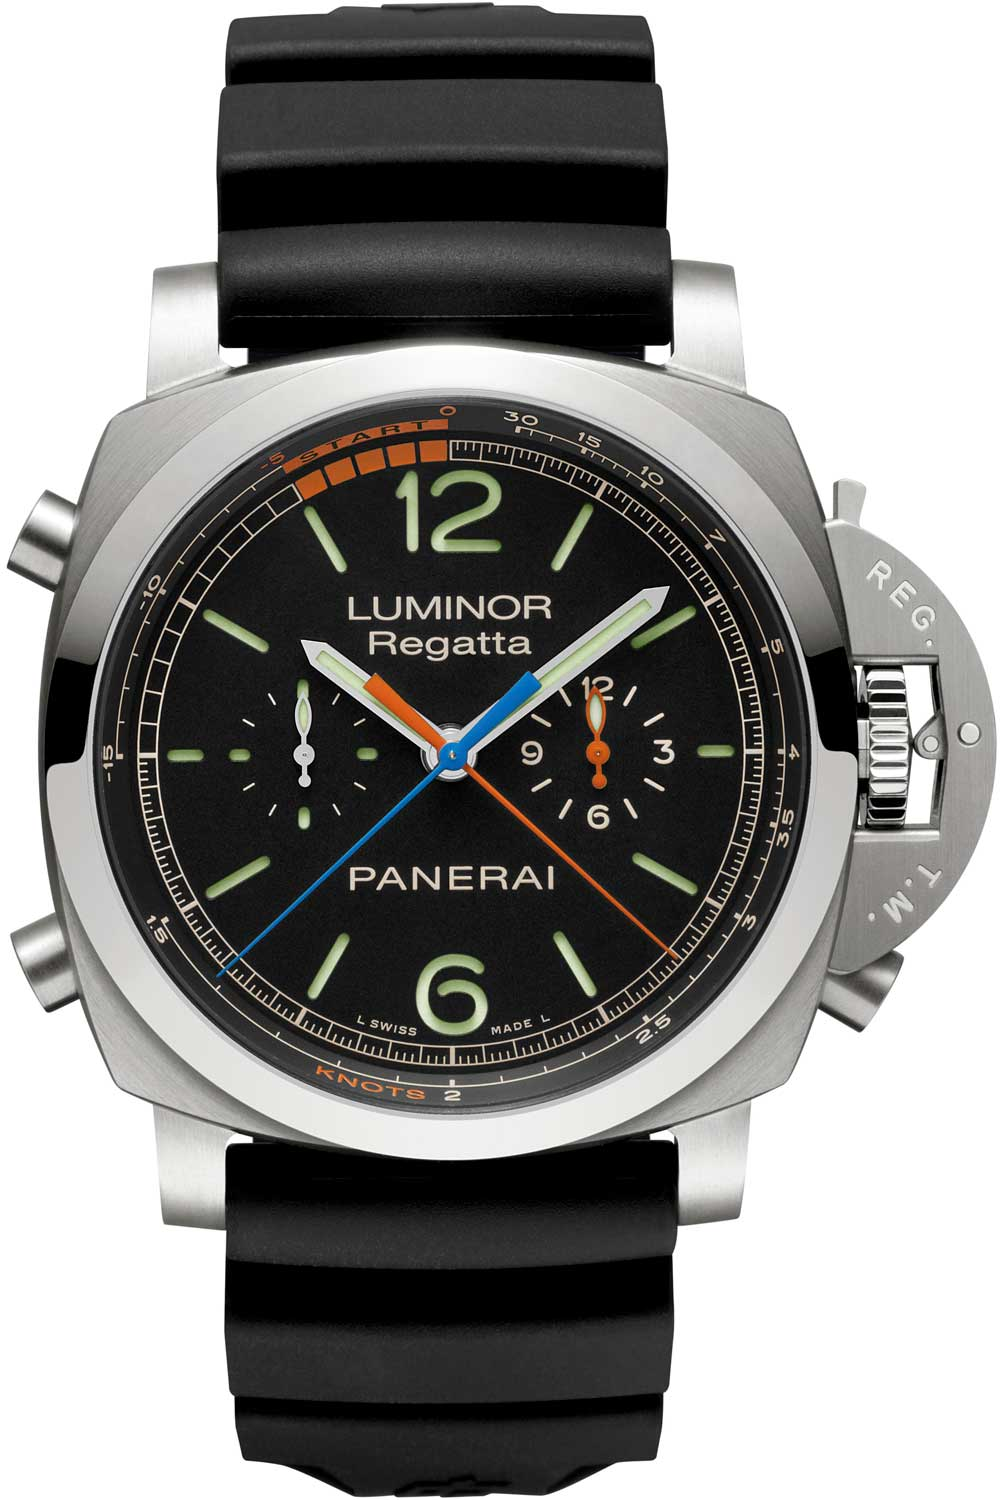 The PAM0526 is a classic Luminor that houses Panerai's in house movement with a regatta timer, the only function in watchmaking made exclusively for sailing.